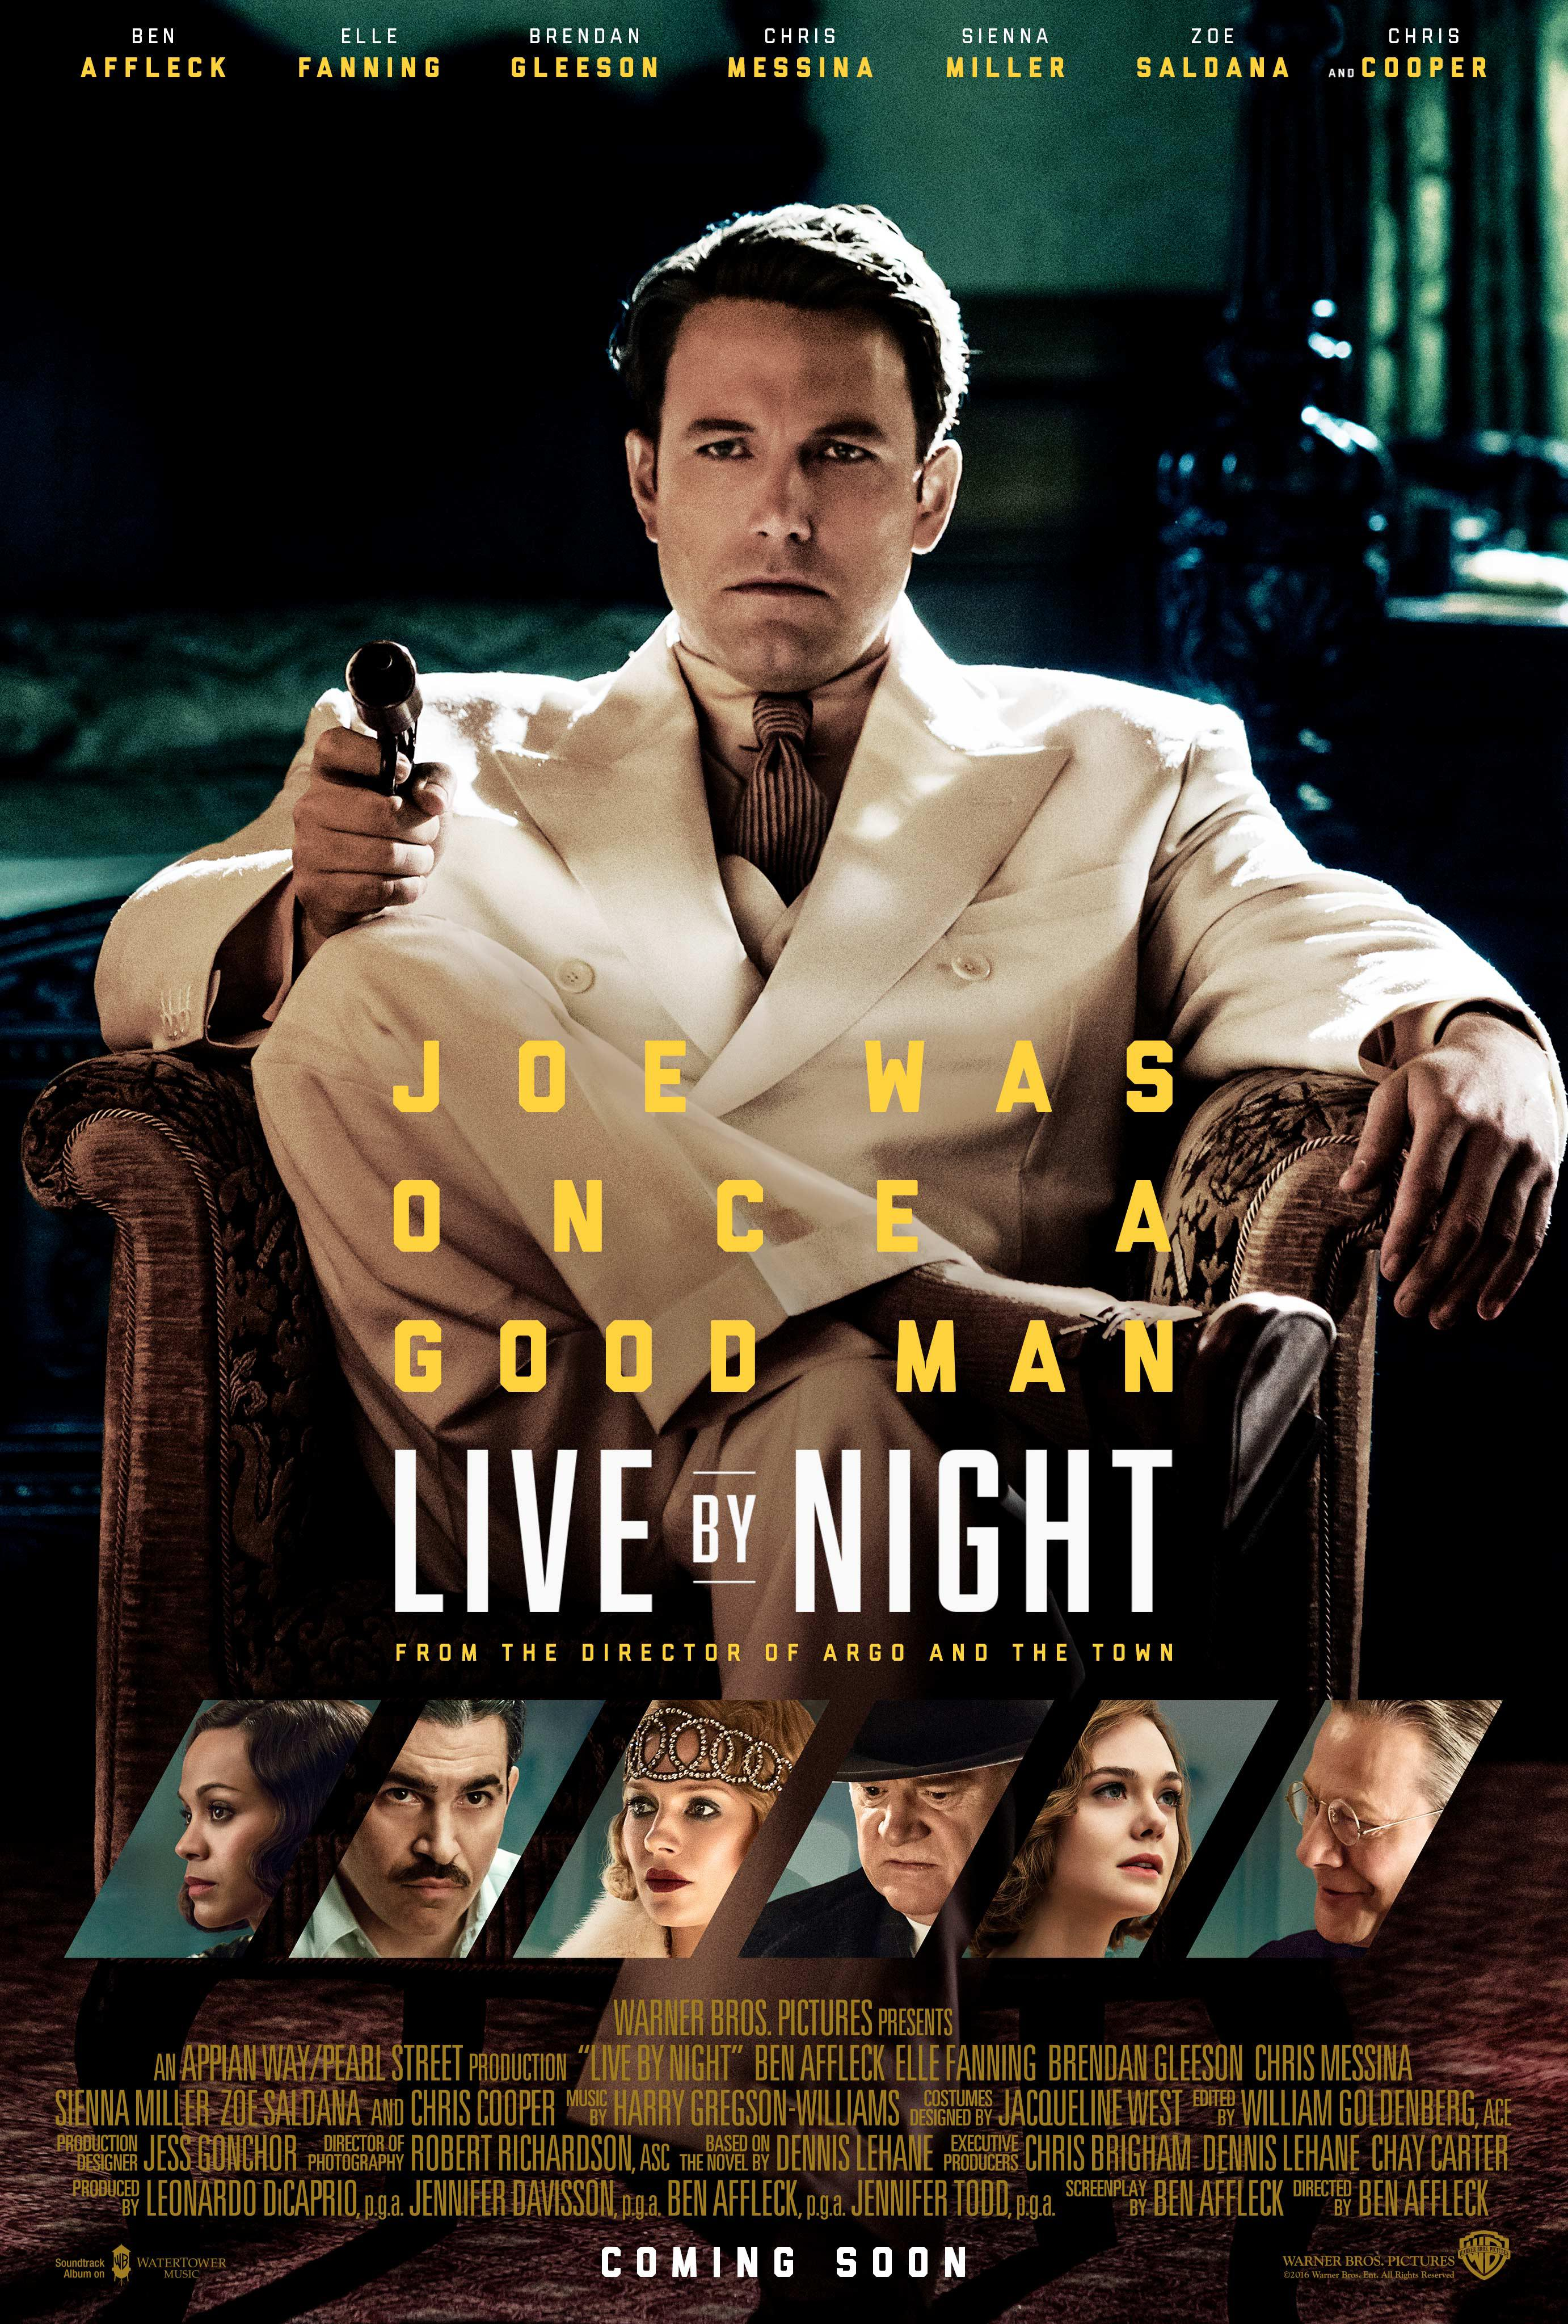 live-by-night-new-poster.jpg